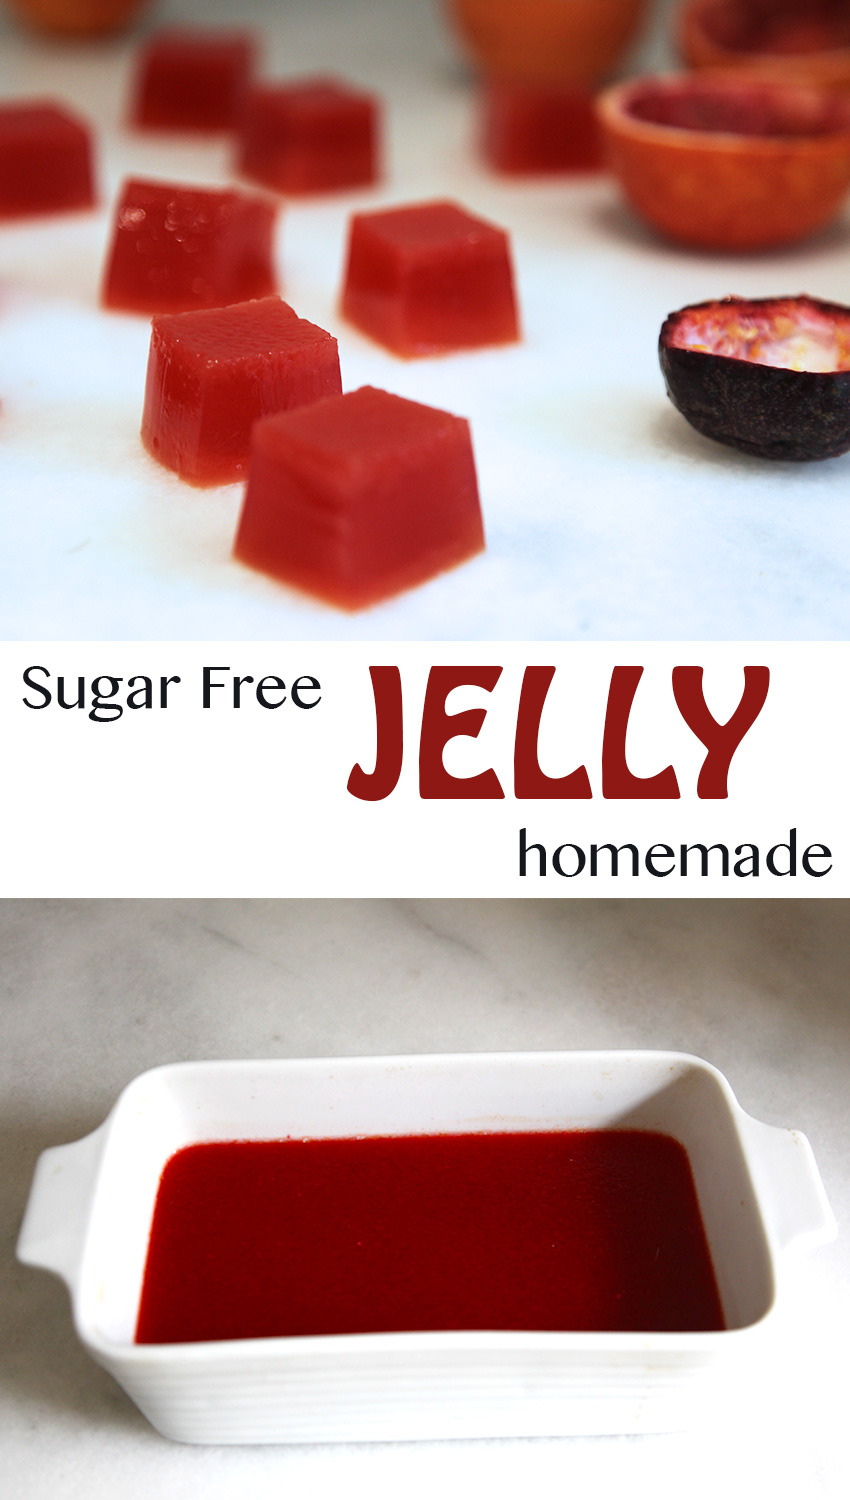 homemade sugar free jelly - blood orange and passionfruit